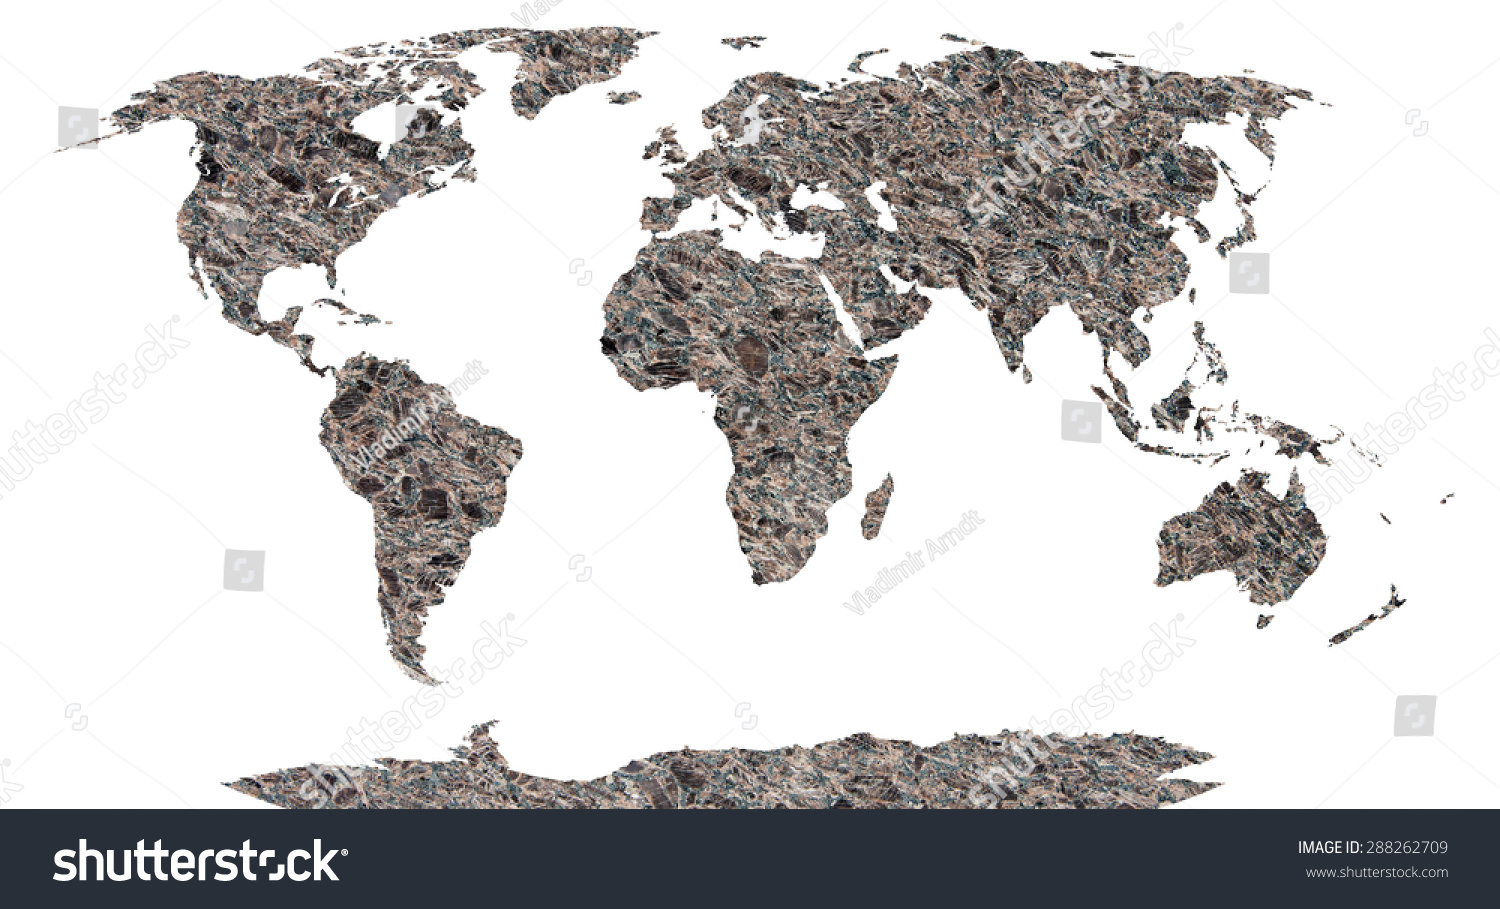 World map continents stone background stock illustration 288262709 world map continents in stone background gumiabroncs Gallery